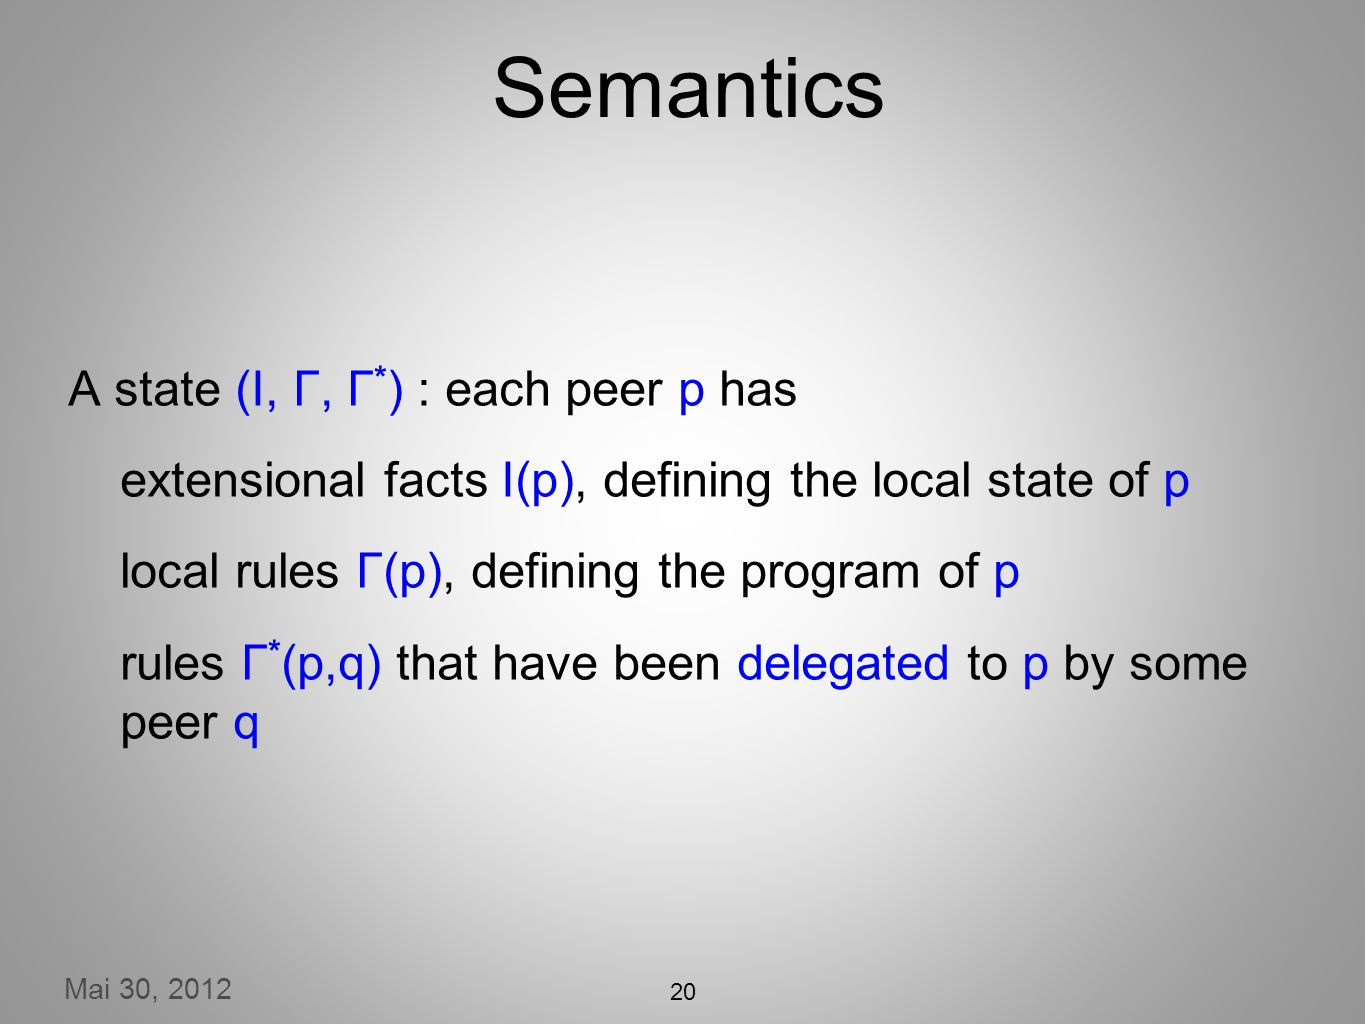 Mai 30, 2012 20 Semantics A state (I, Γ, Γ * ) : each peer p has extensional facts I(p), defining the local state of p local rules Γ(p), defining the program of p rules Γ * (p,q) that have been delegated to p by some peer q